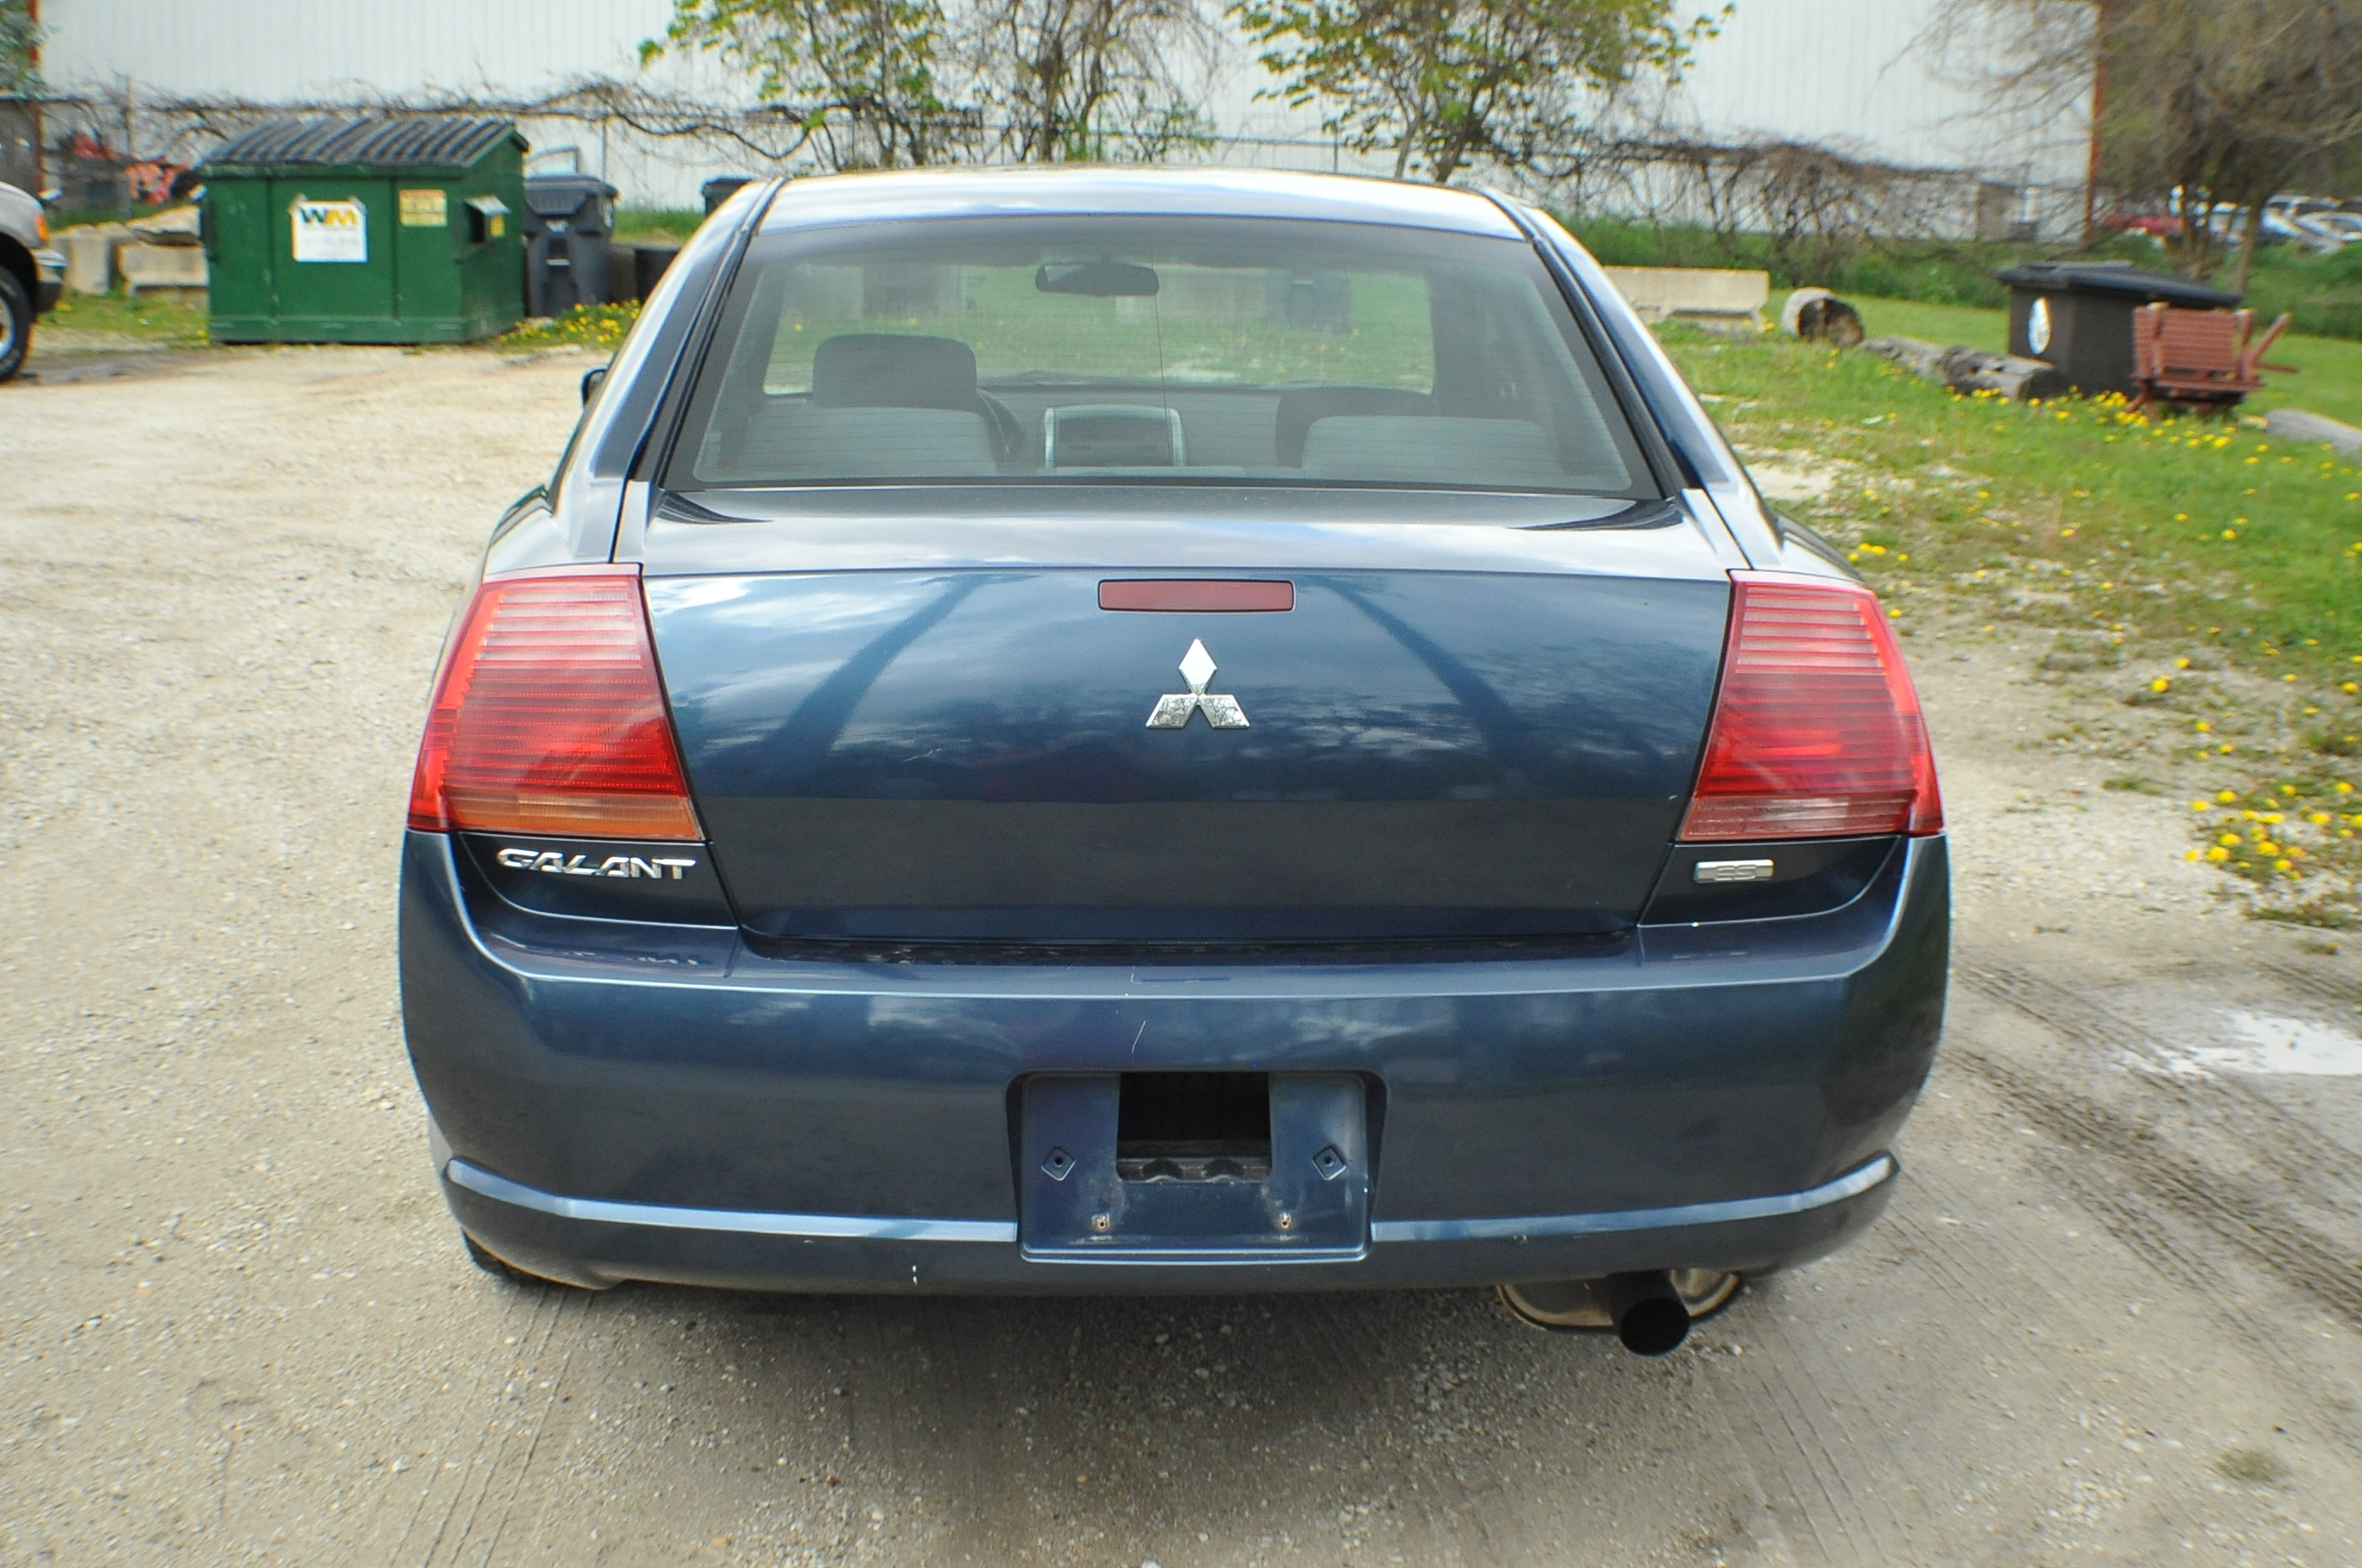 2005 Mitsubishi Galant ES Blue Sedan Used Car Sale Fox River Grove Grayslake Volo Green Oaks